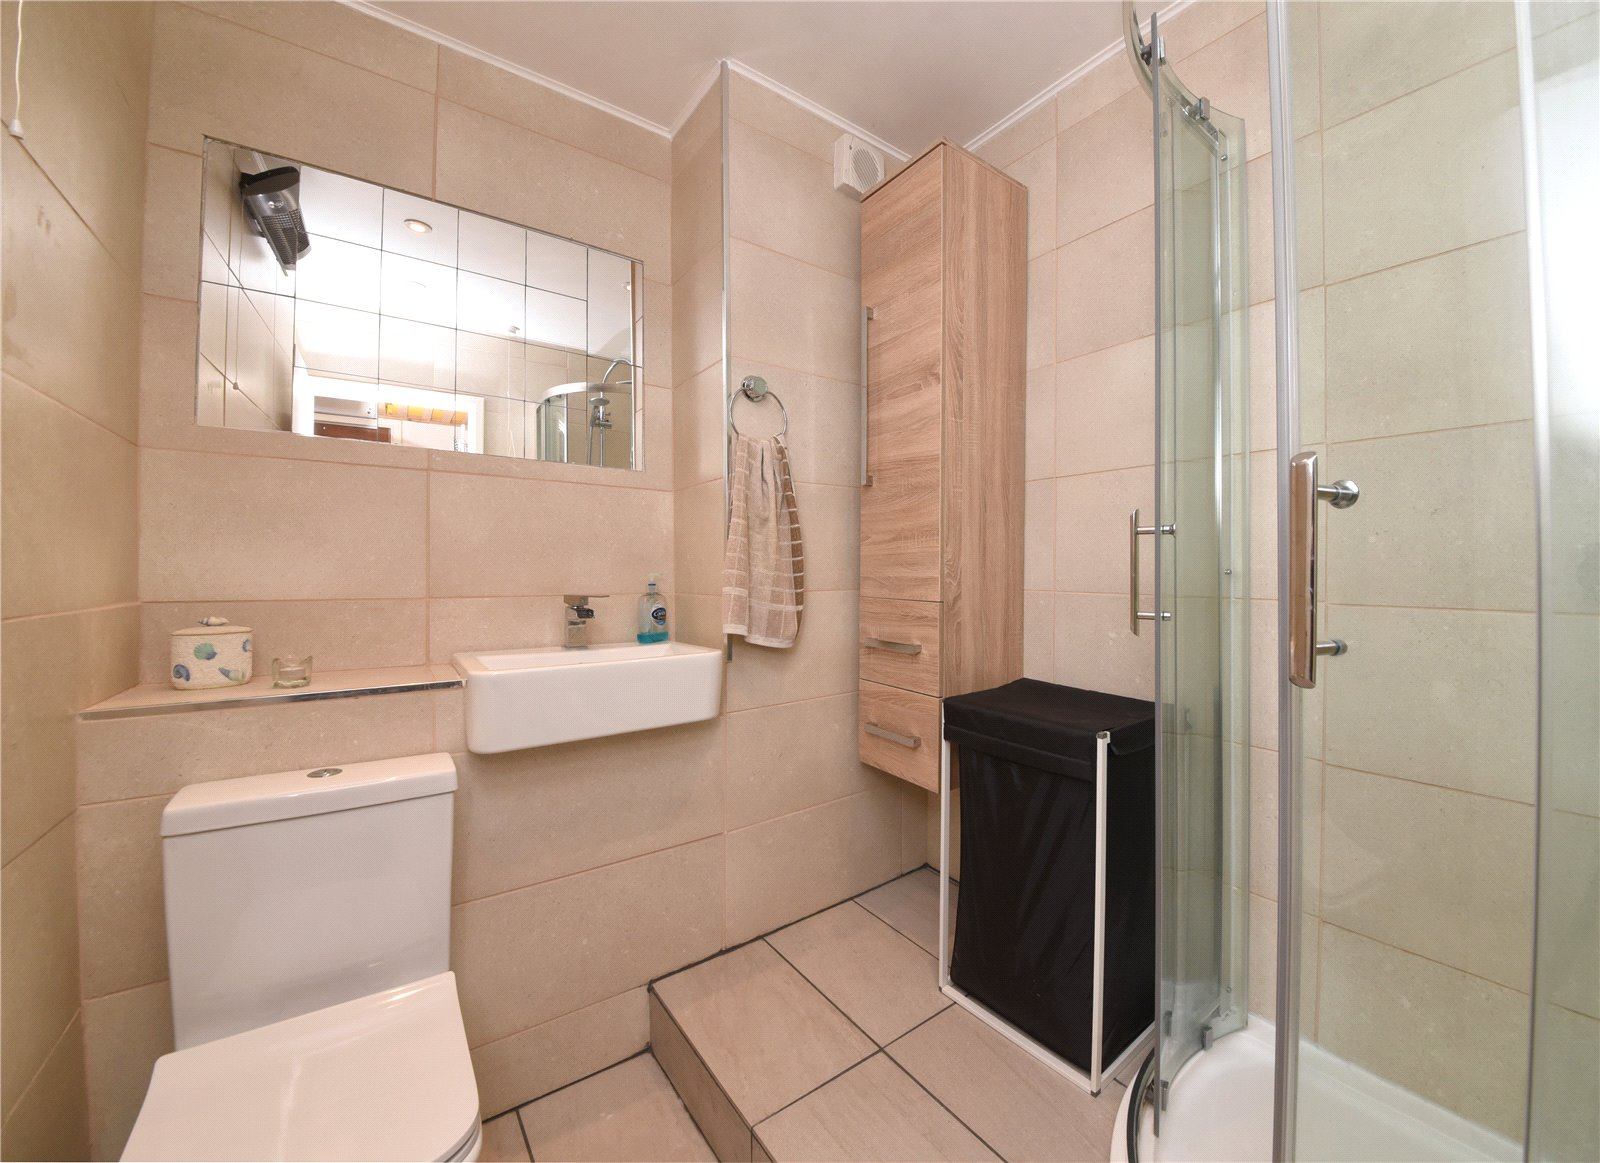 Apartment for sale in New Barnet, EN4 9PJ  - Property Image 3